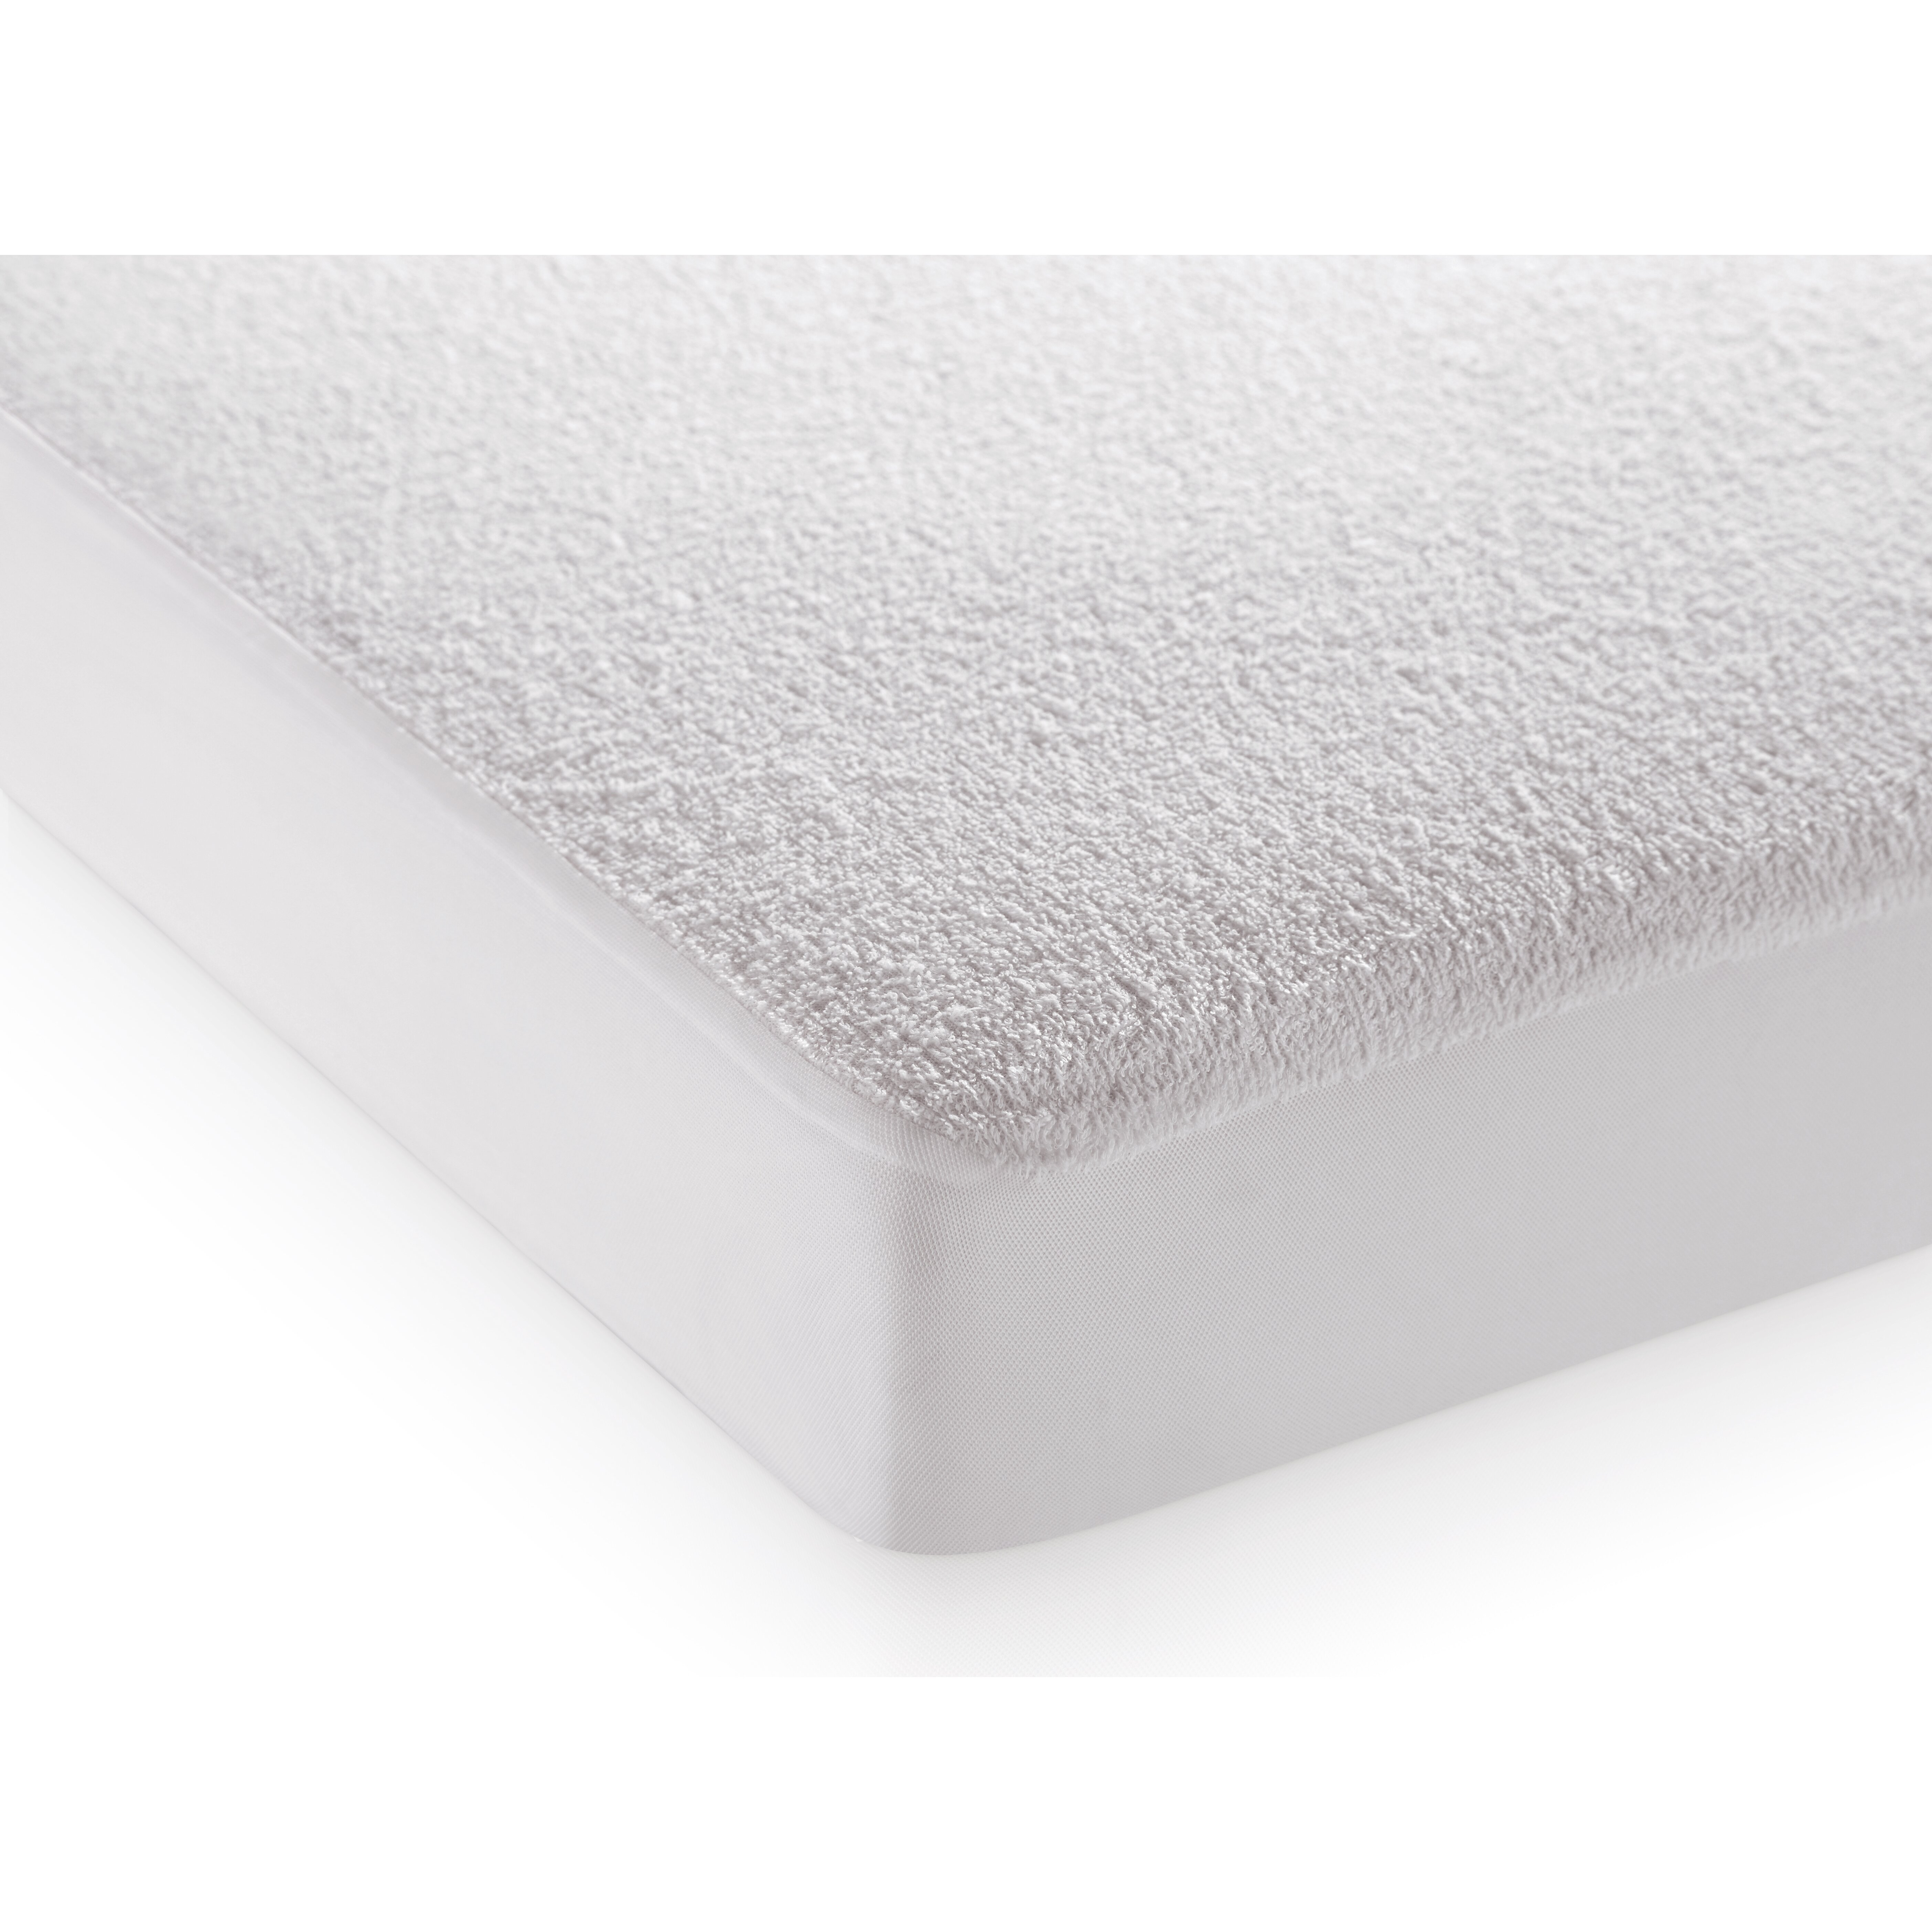 breathable crib mattress pad  best baby crib inspiration - terry and breathable crib hypoallergenic waterproof mattress protector